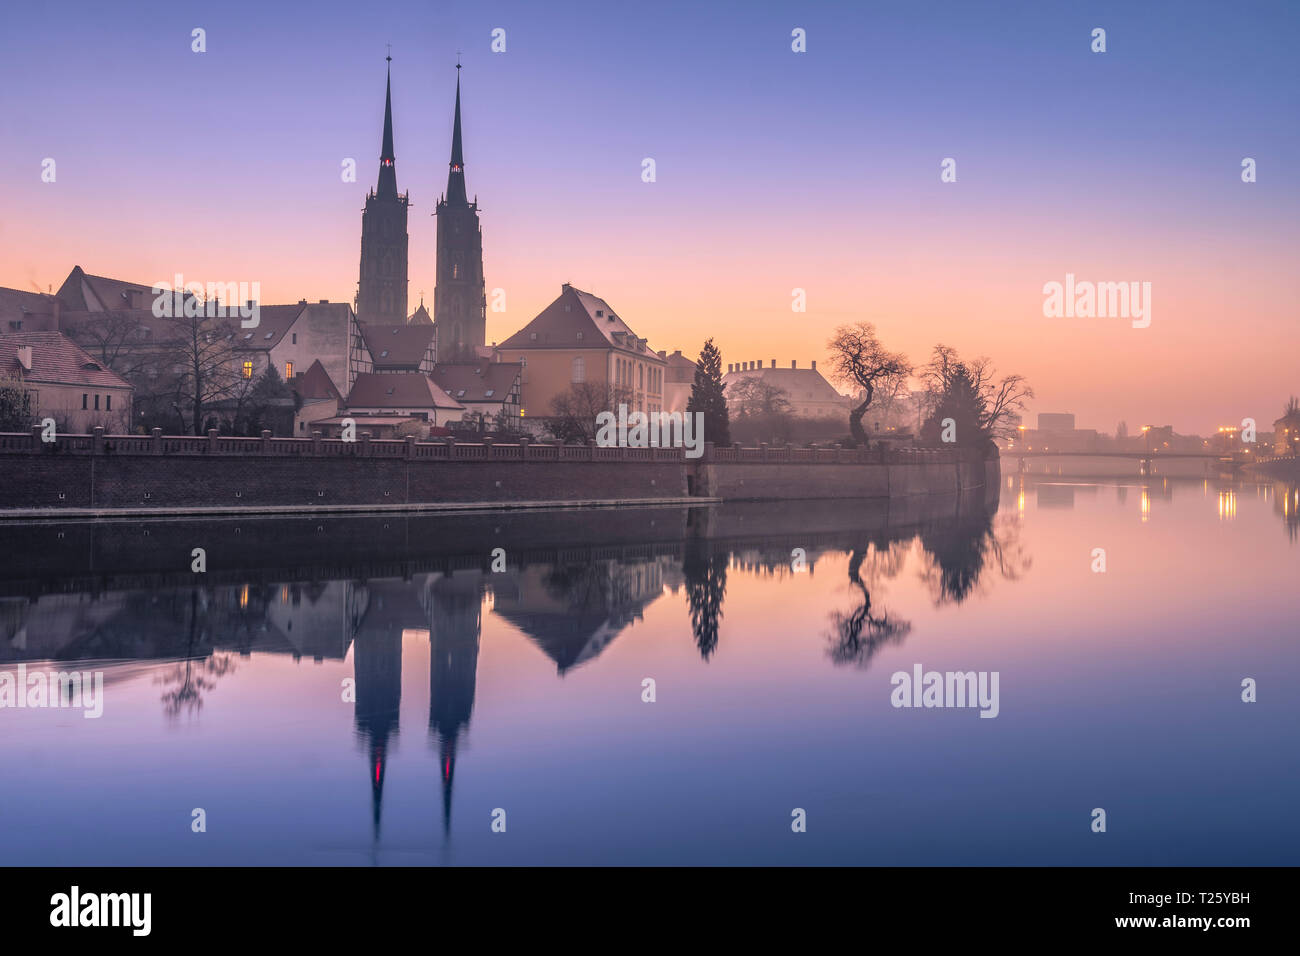 Ostrów Tumski, Wrocław, at sunrise. Stock Photo